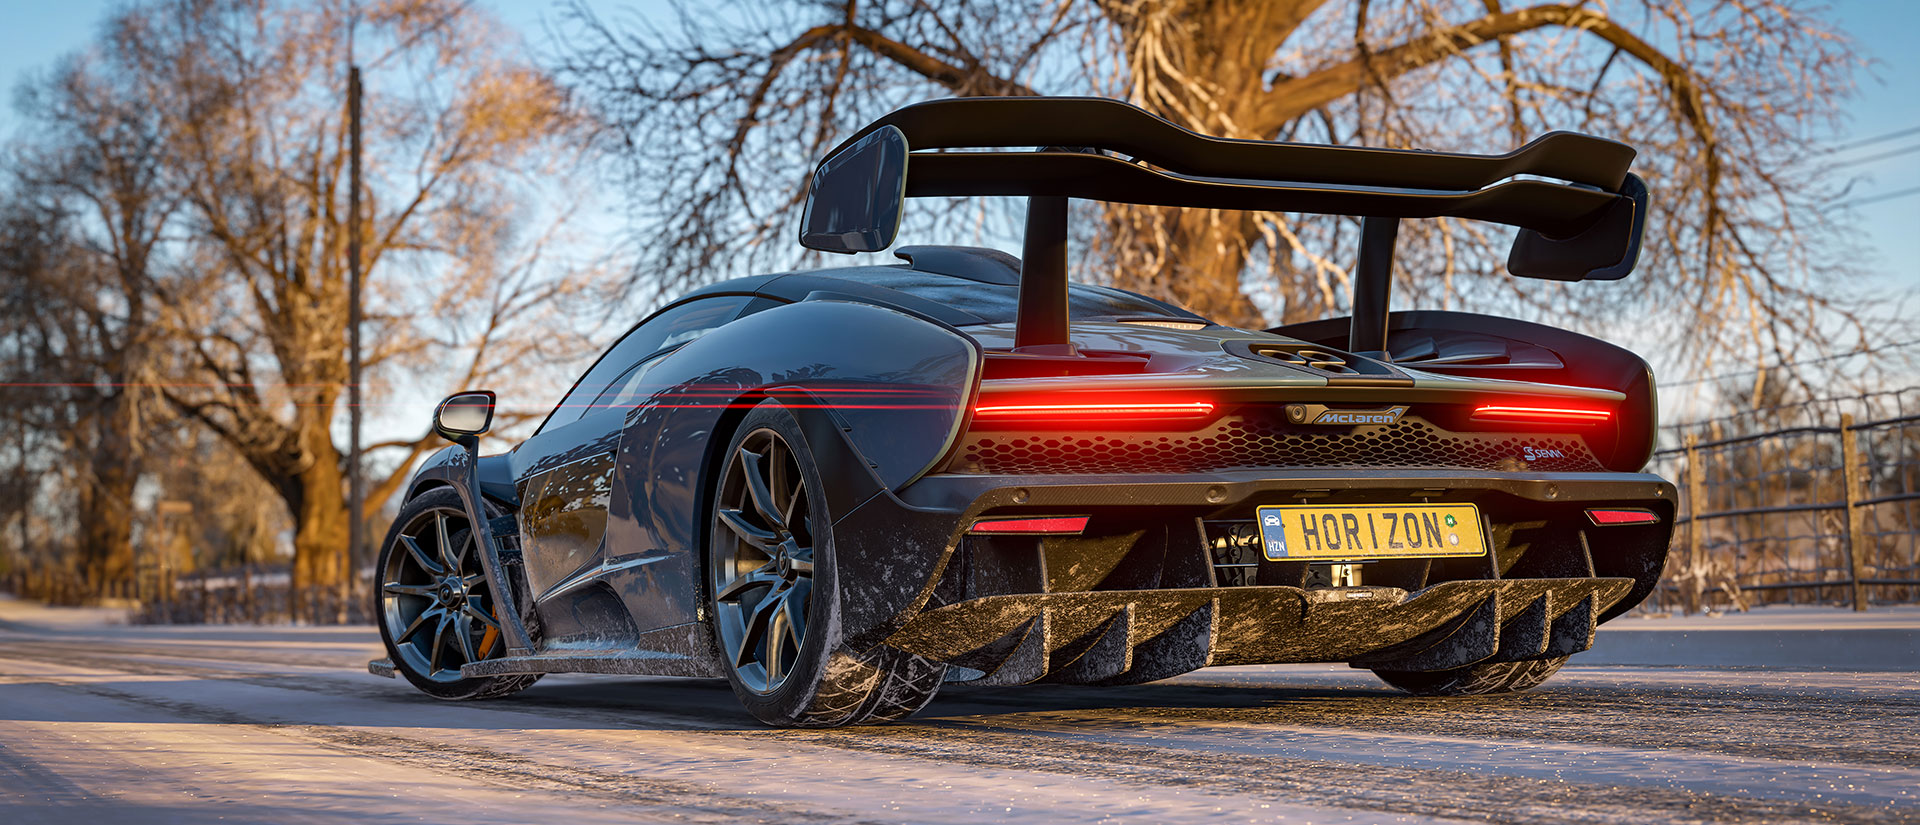 forza horizon 4 leak reveals roster of more than 450 cars dev comments on leak. Black Bedroom Furniture Sets. Home Design Ideas